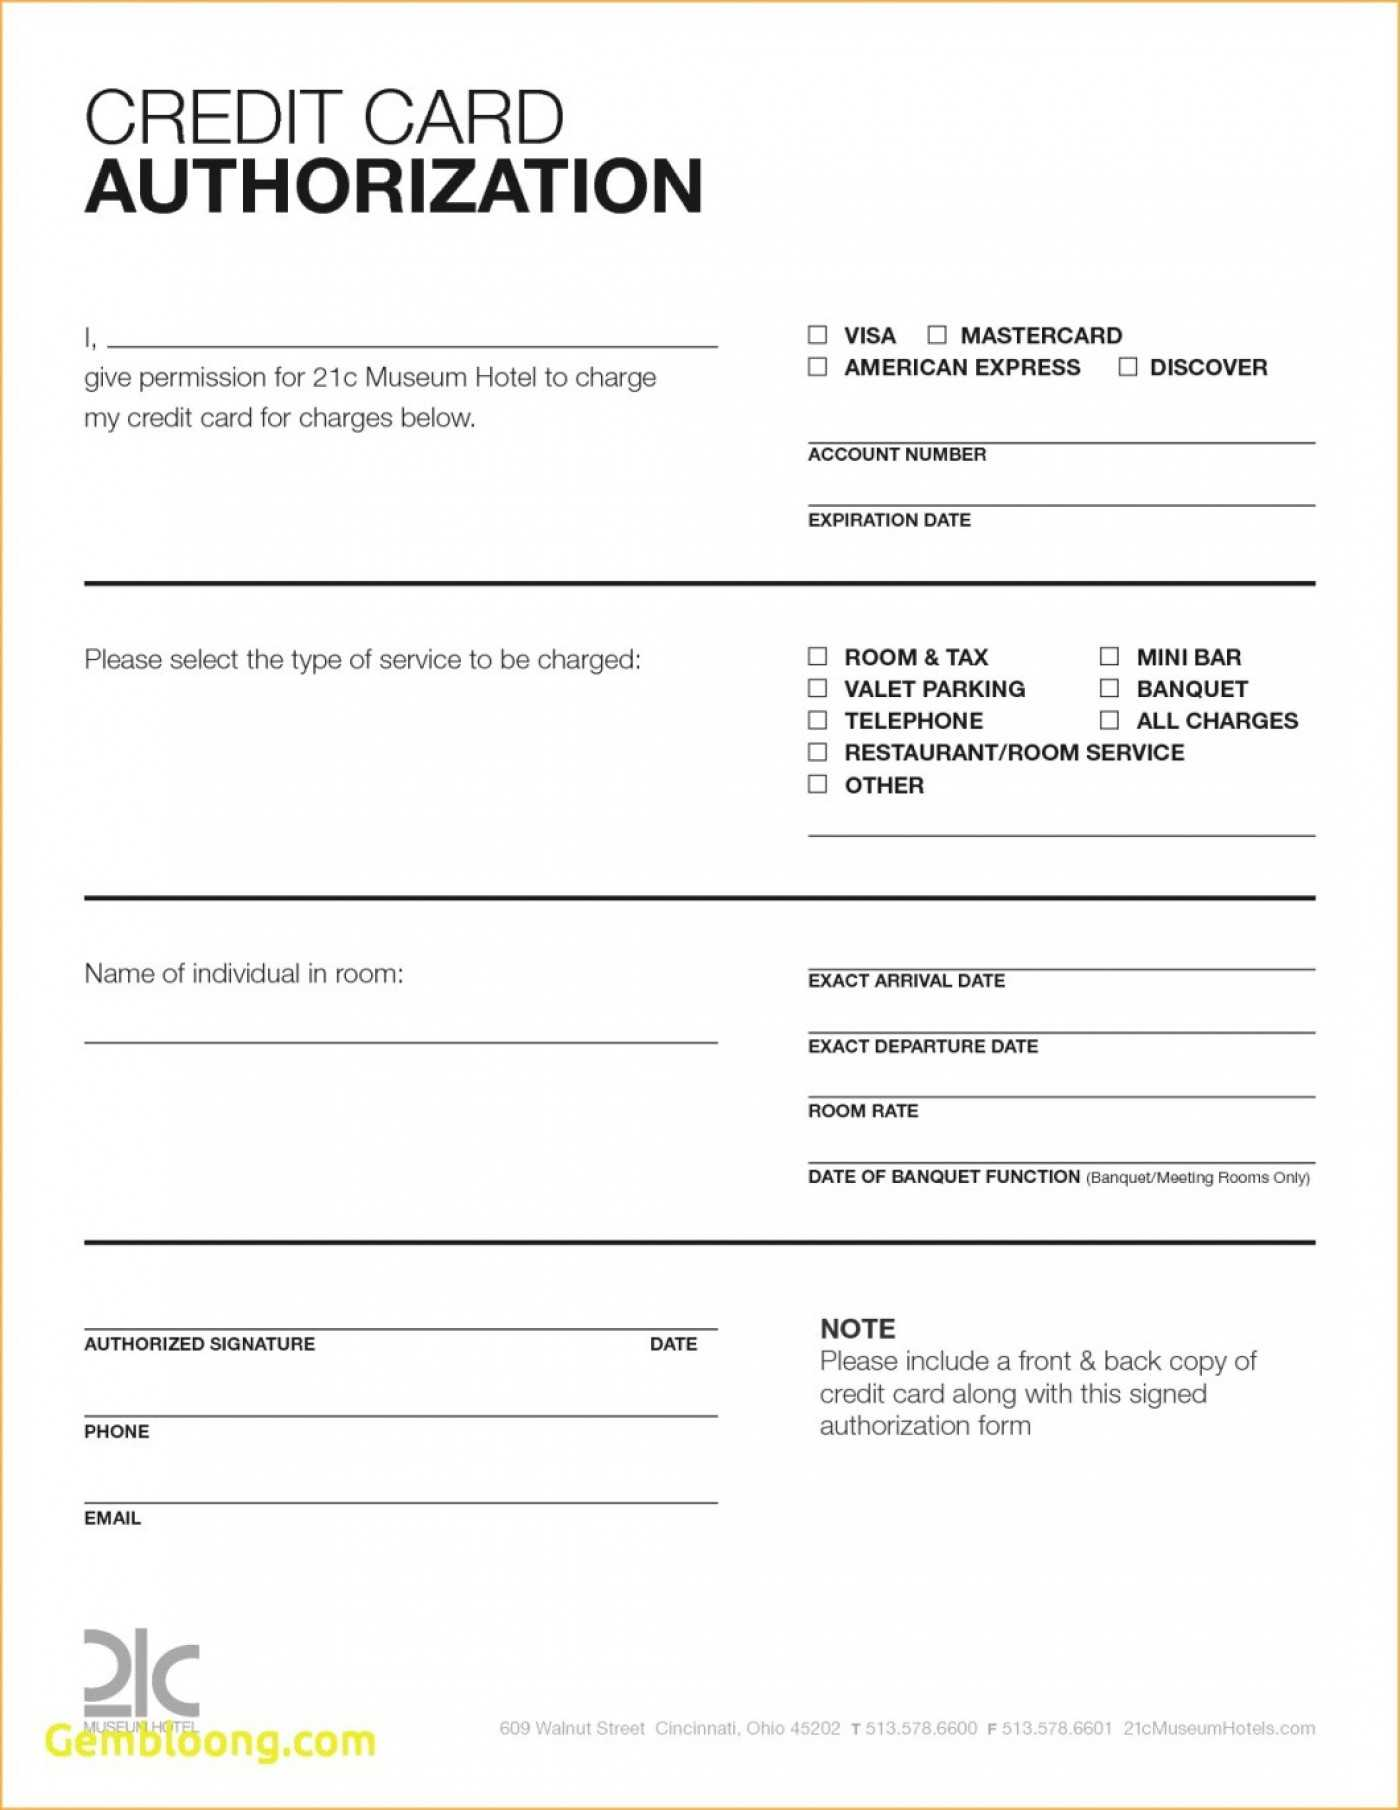 025 Credit Card Authorization Form Template Download Word Inside Credit Card Size Template For Word